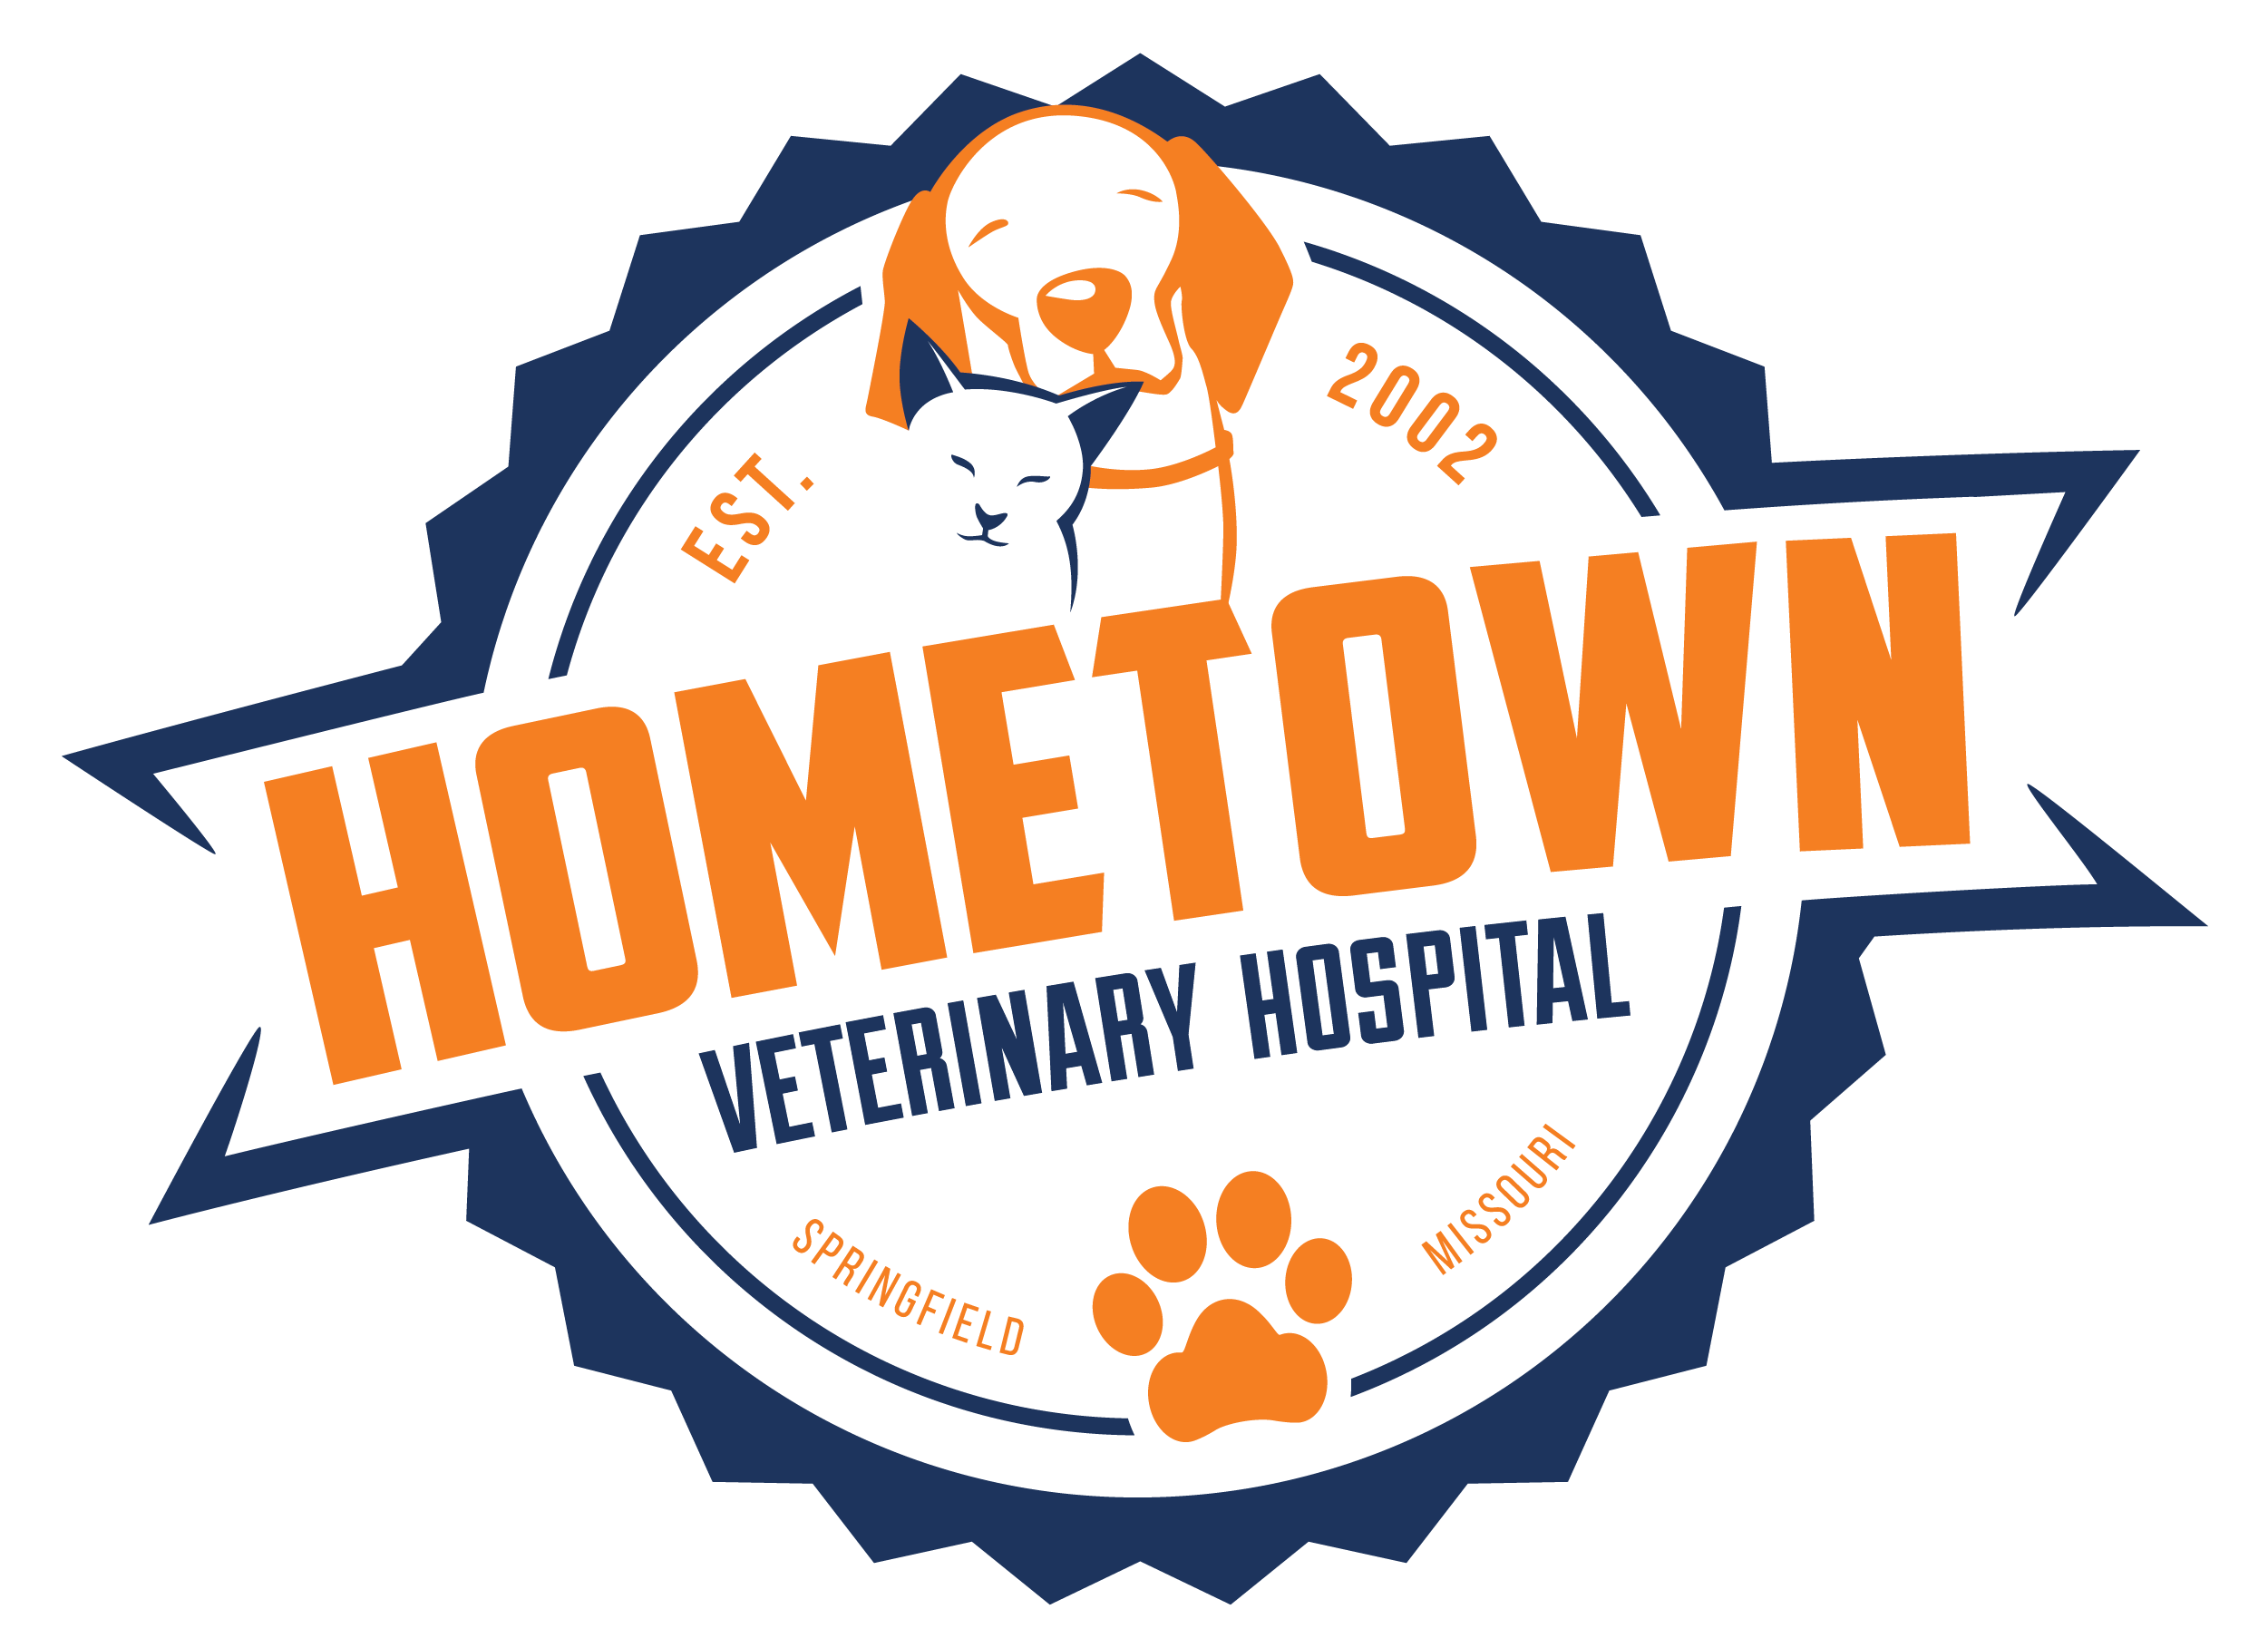 Learn More About Our Staff at Hometown Veterinary Hospital